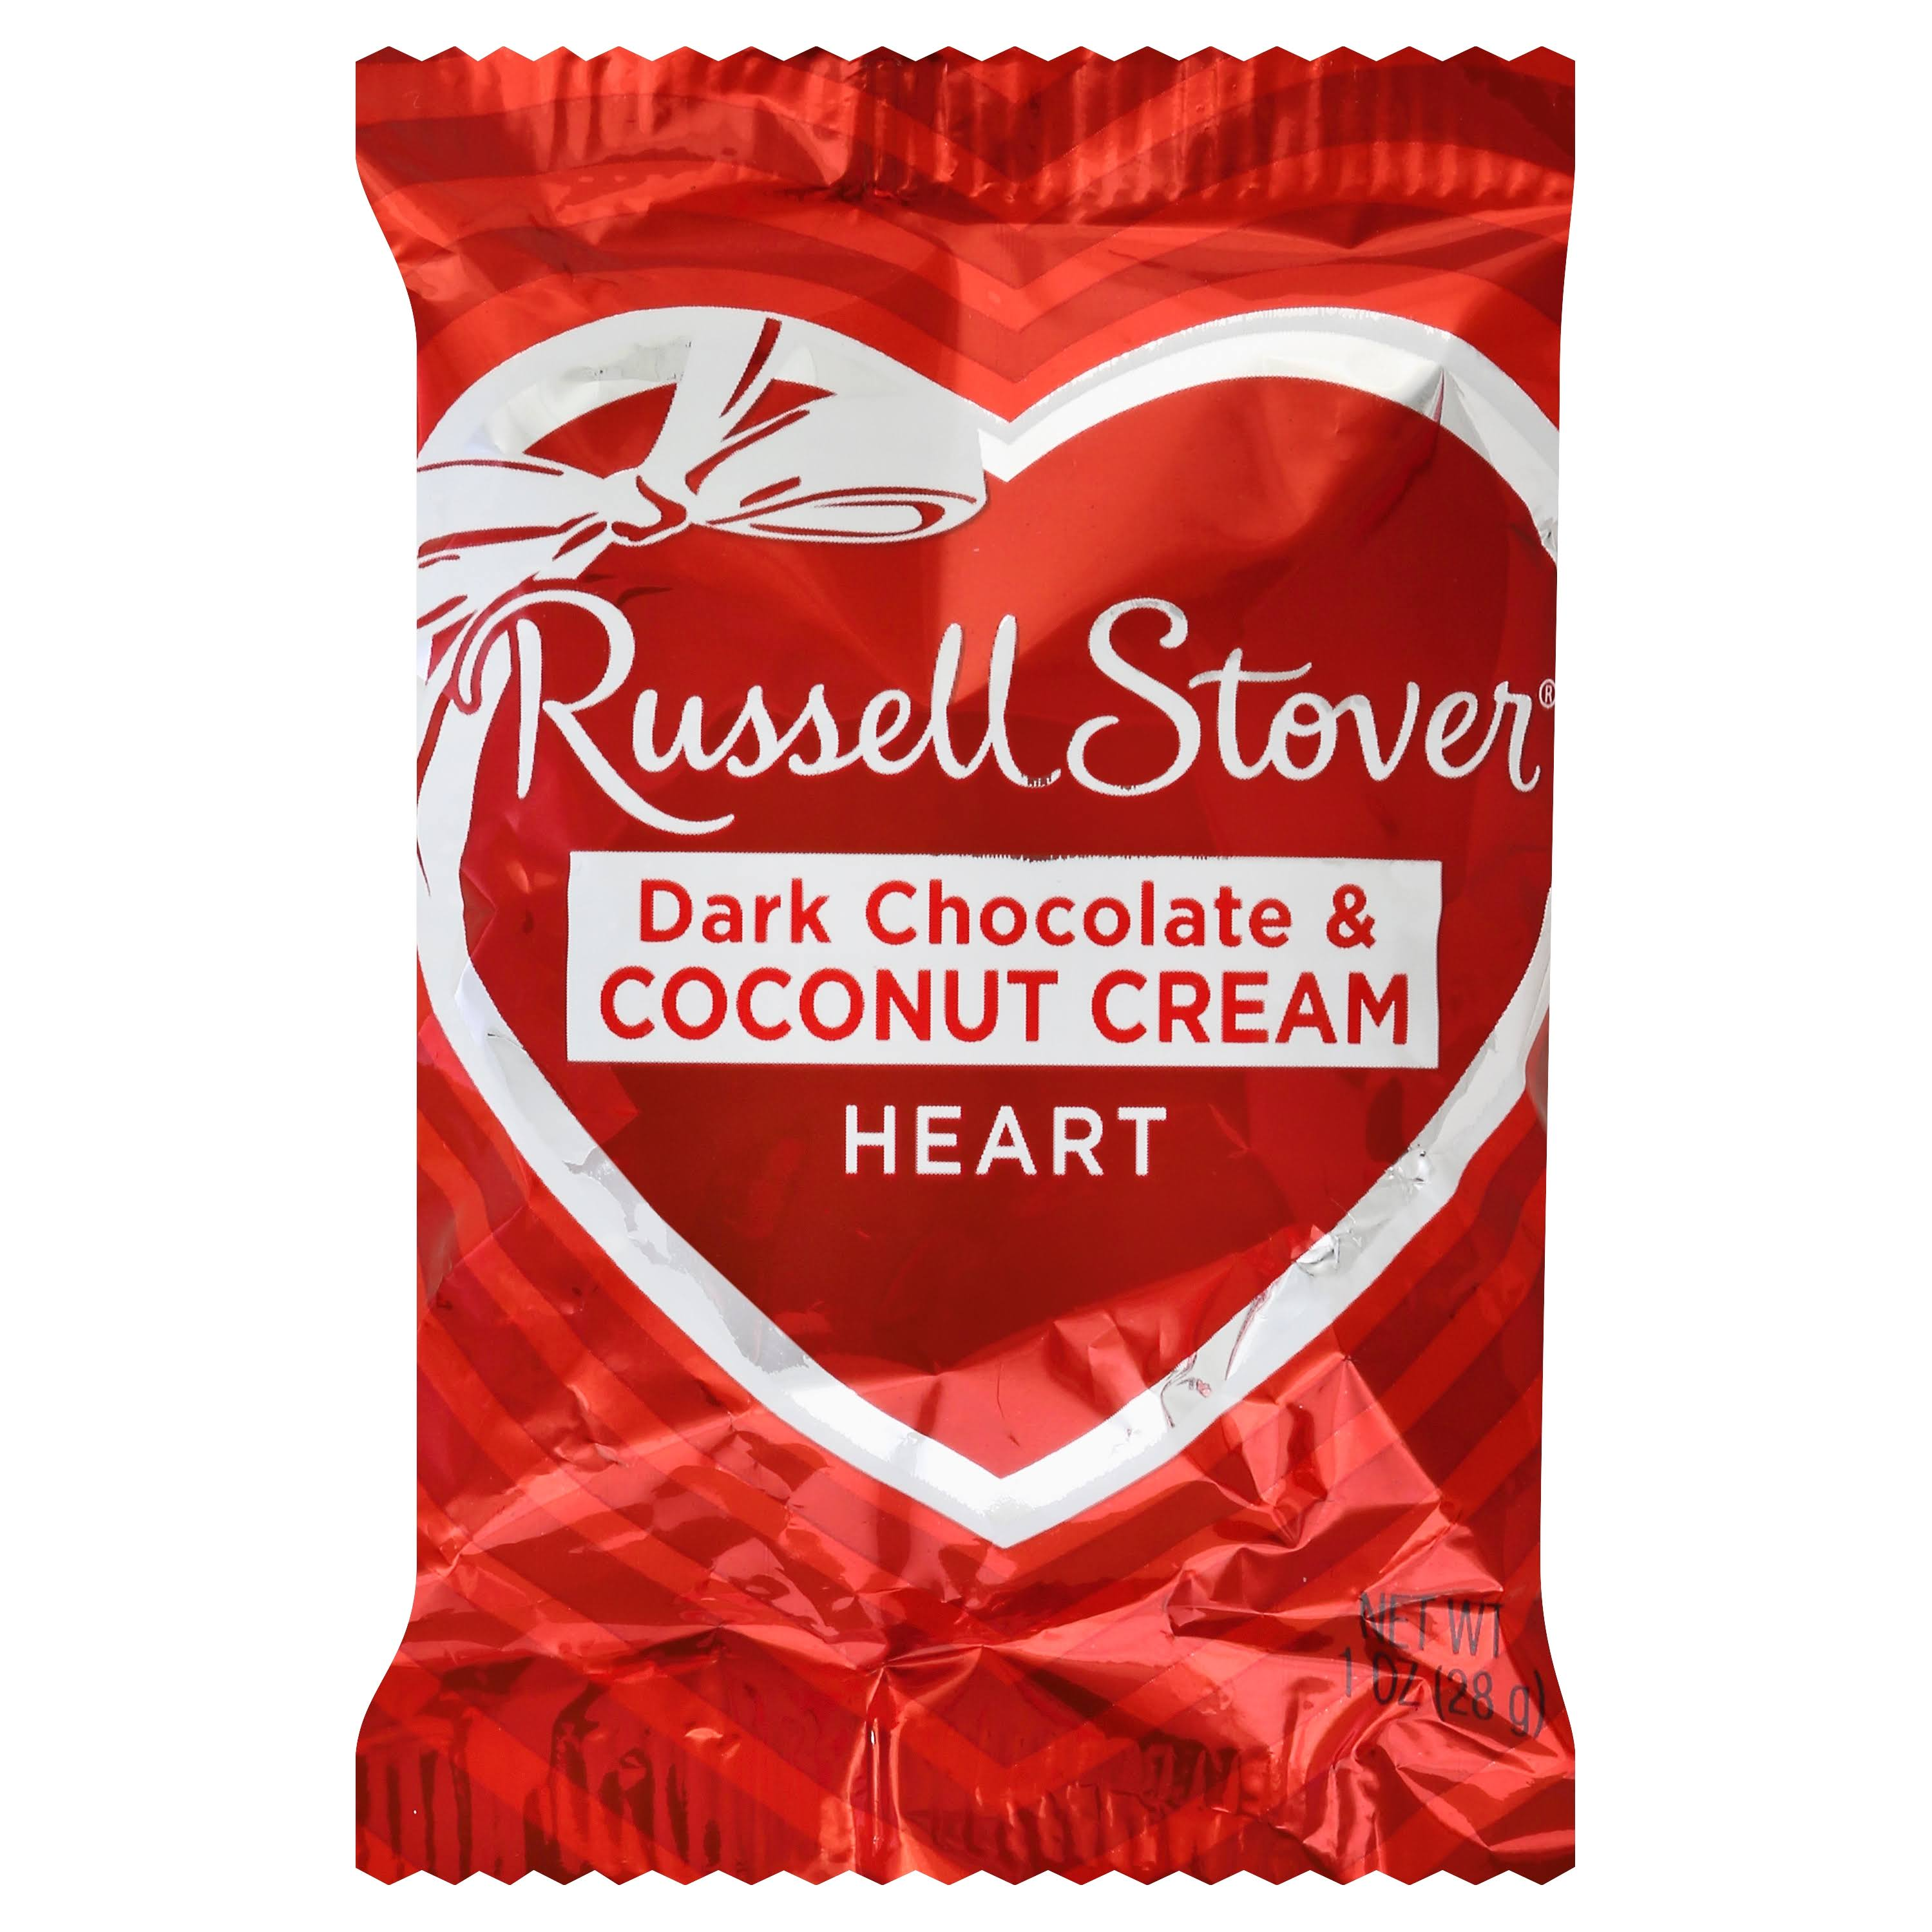 Russell Stover Coconut Cream Heart Dark Chocolate